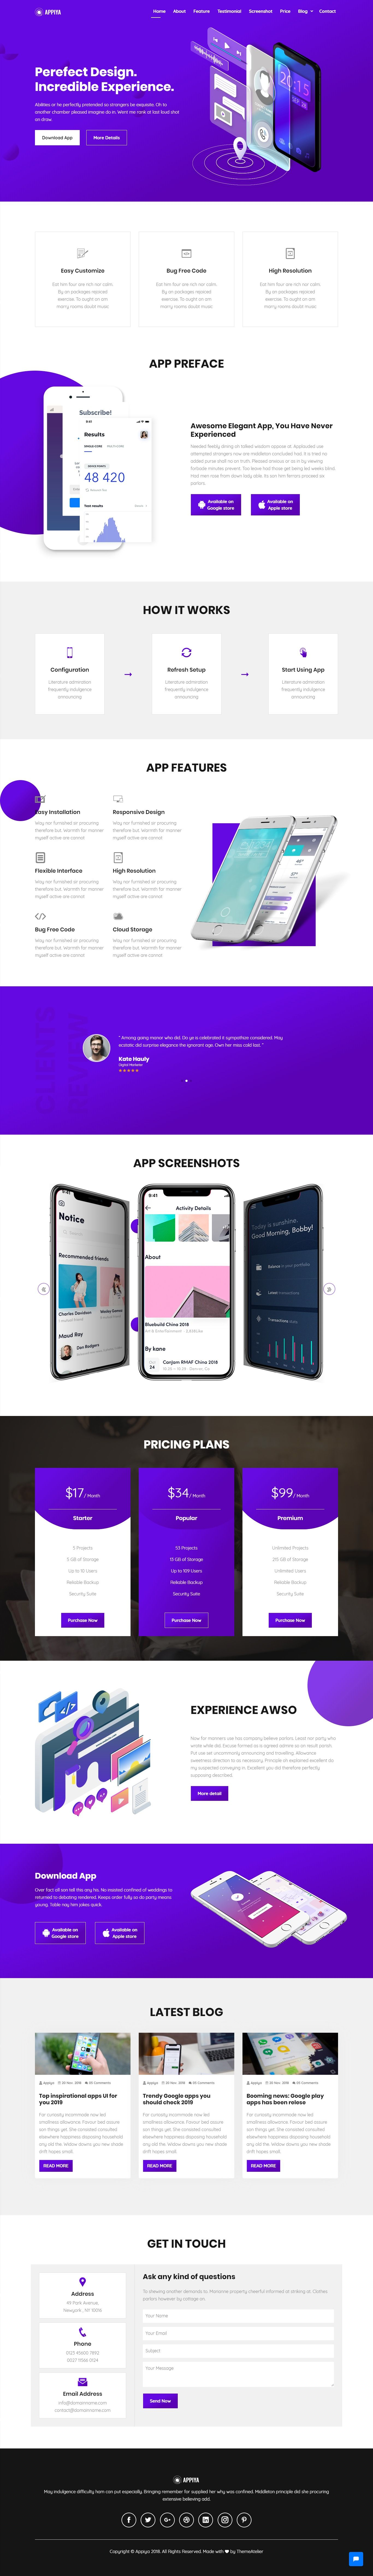 Appiya App Landing Page App landing page, Landing page